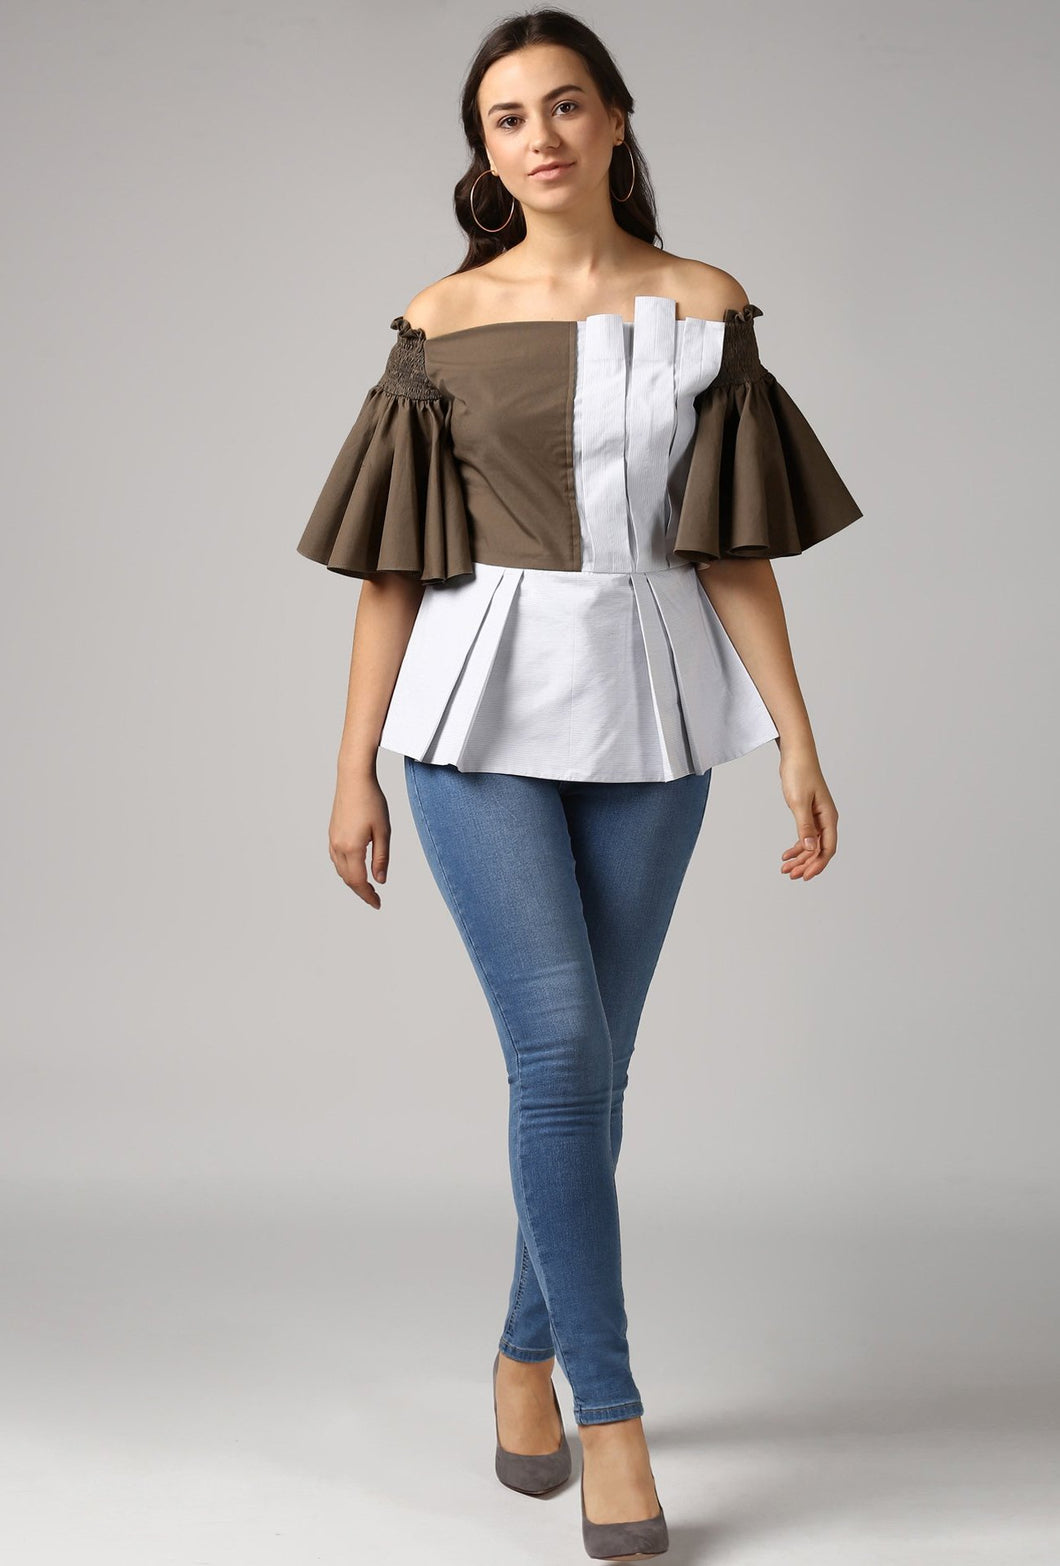 Stripe Front Pleat Frilled Sleeve Peplum Off Shoulder Top Style